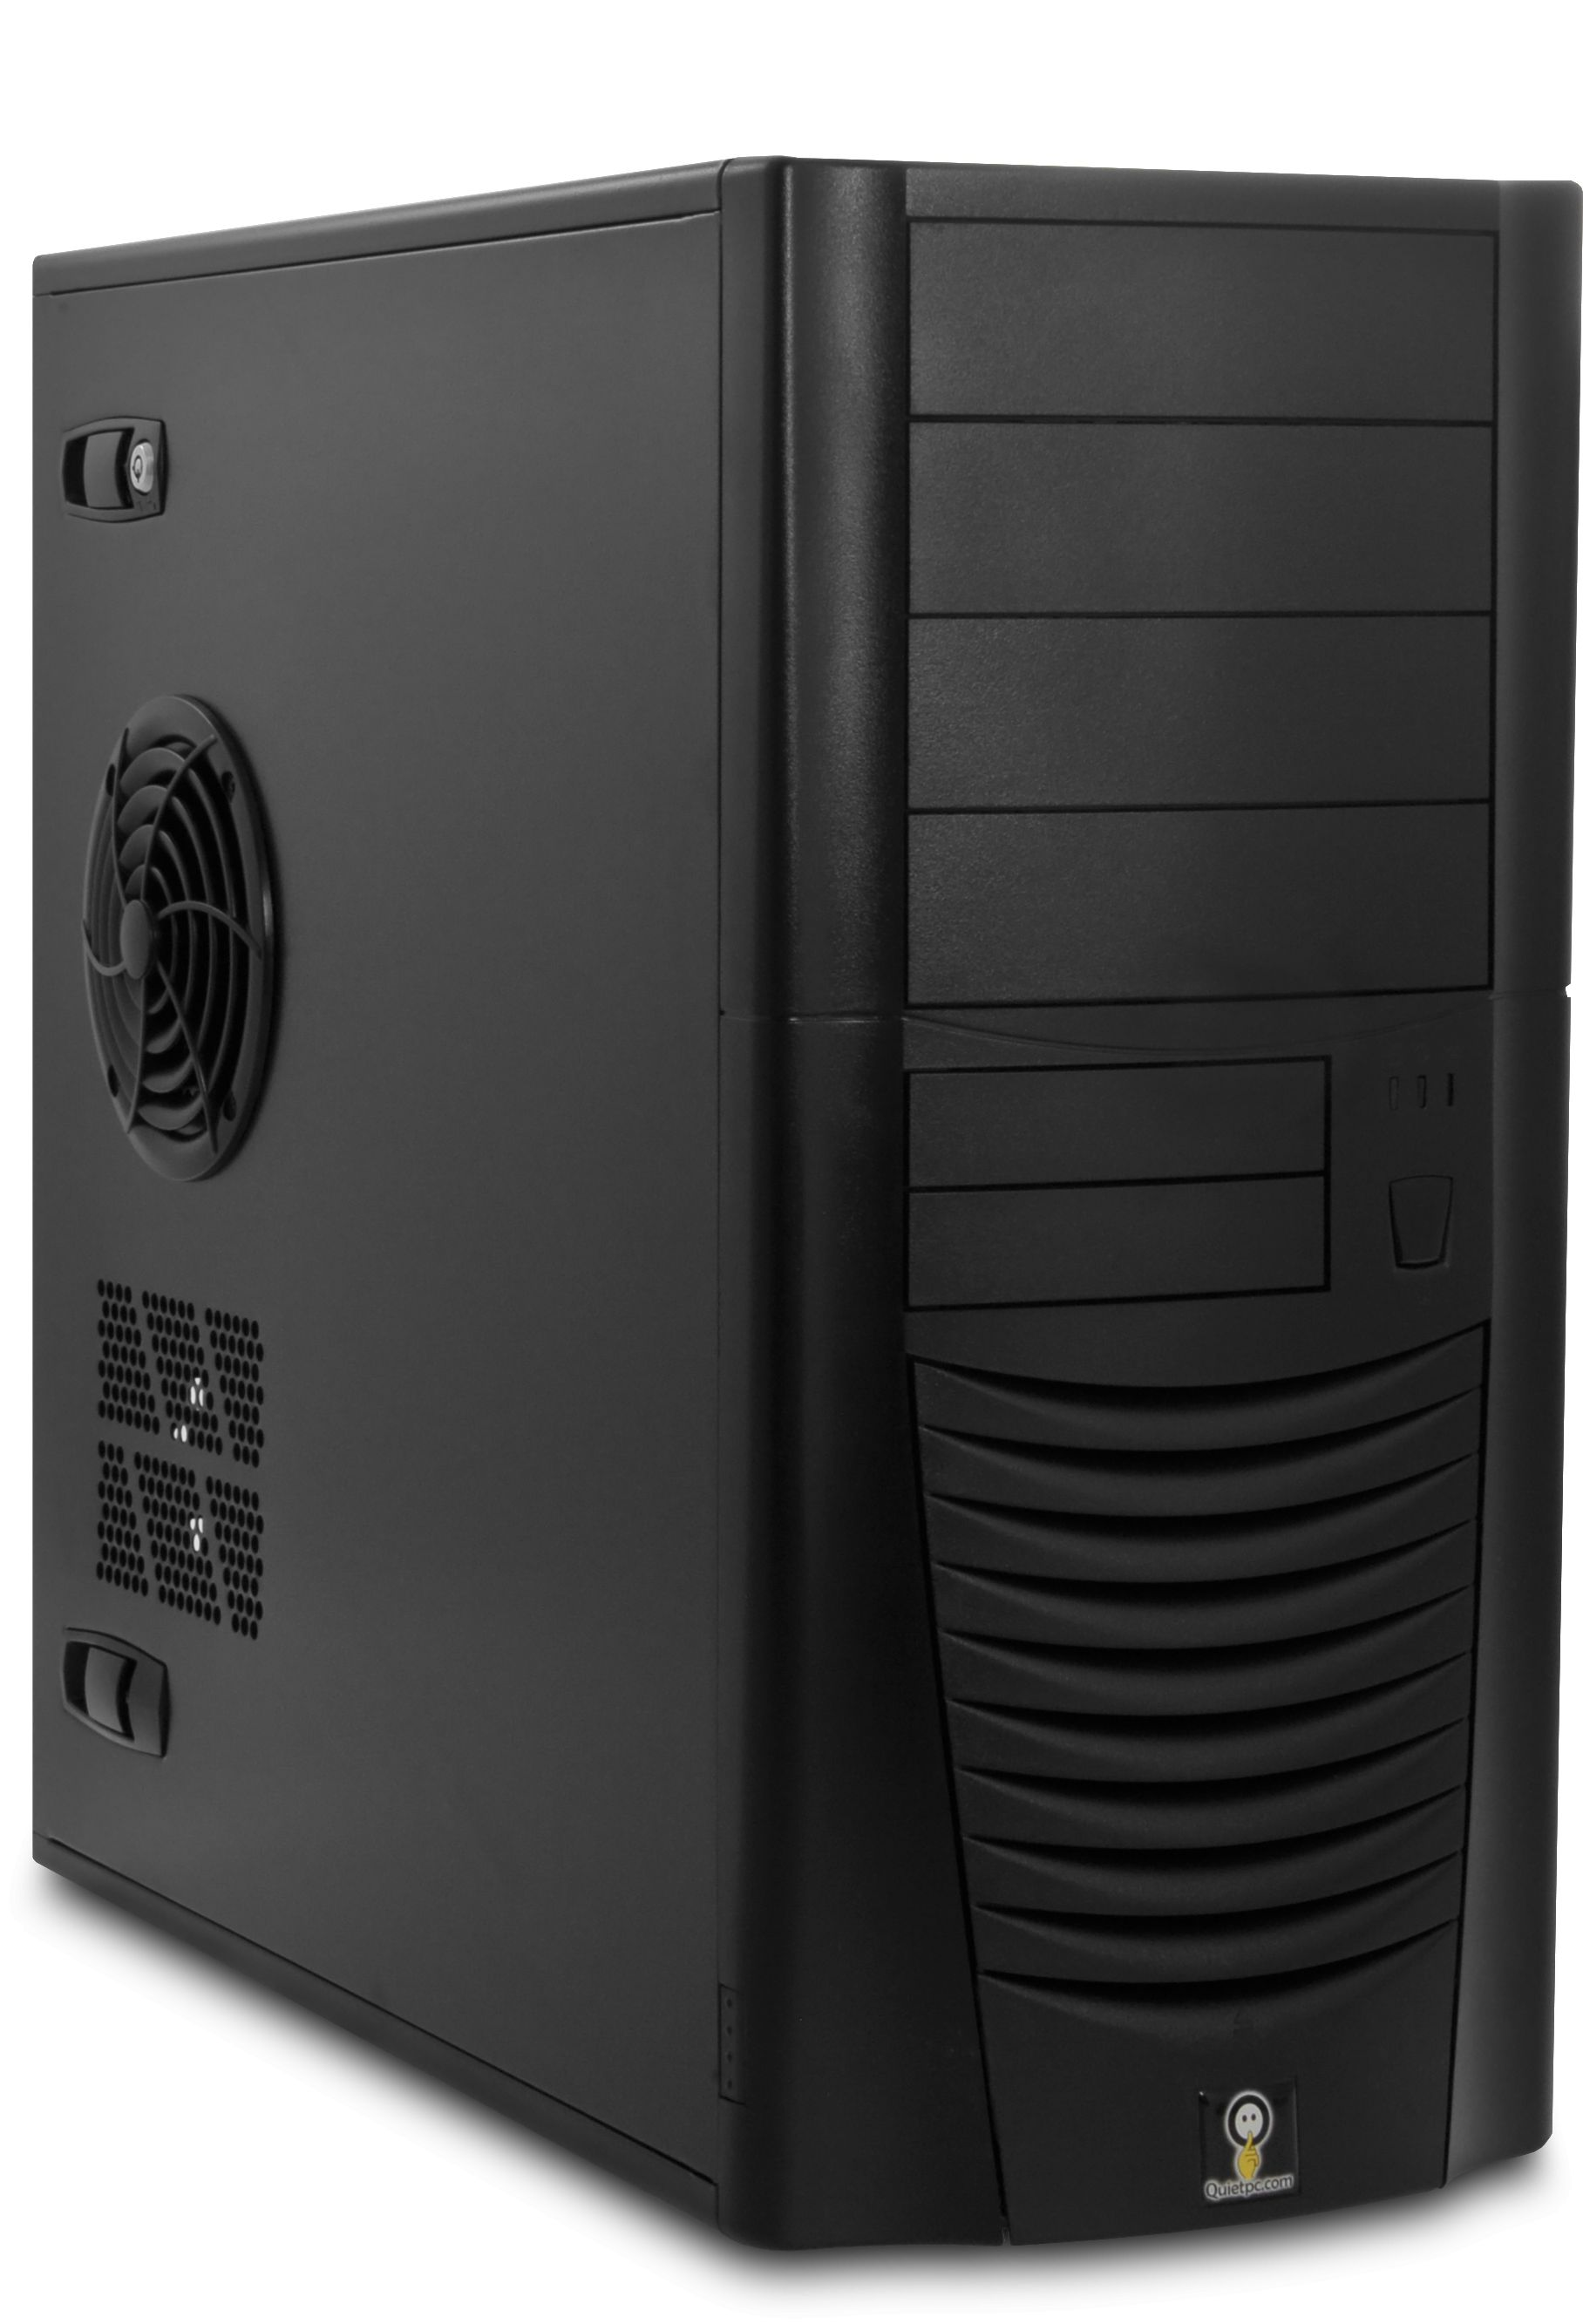 Acousticase Classic C6607b Black Soundproof Tower Case